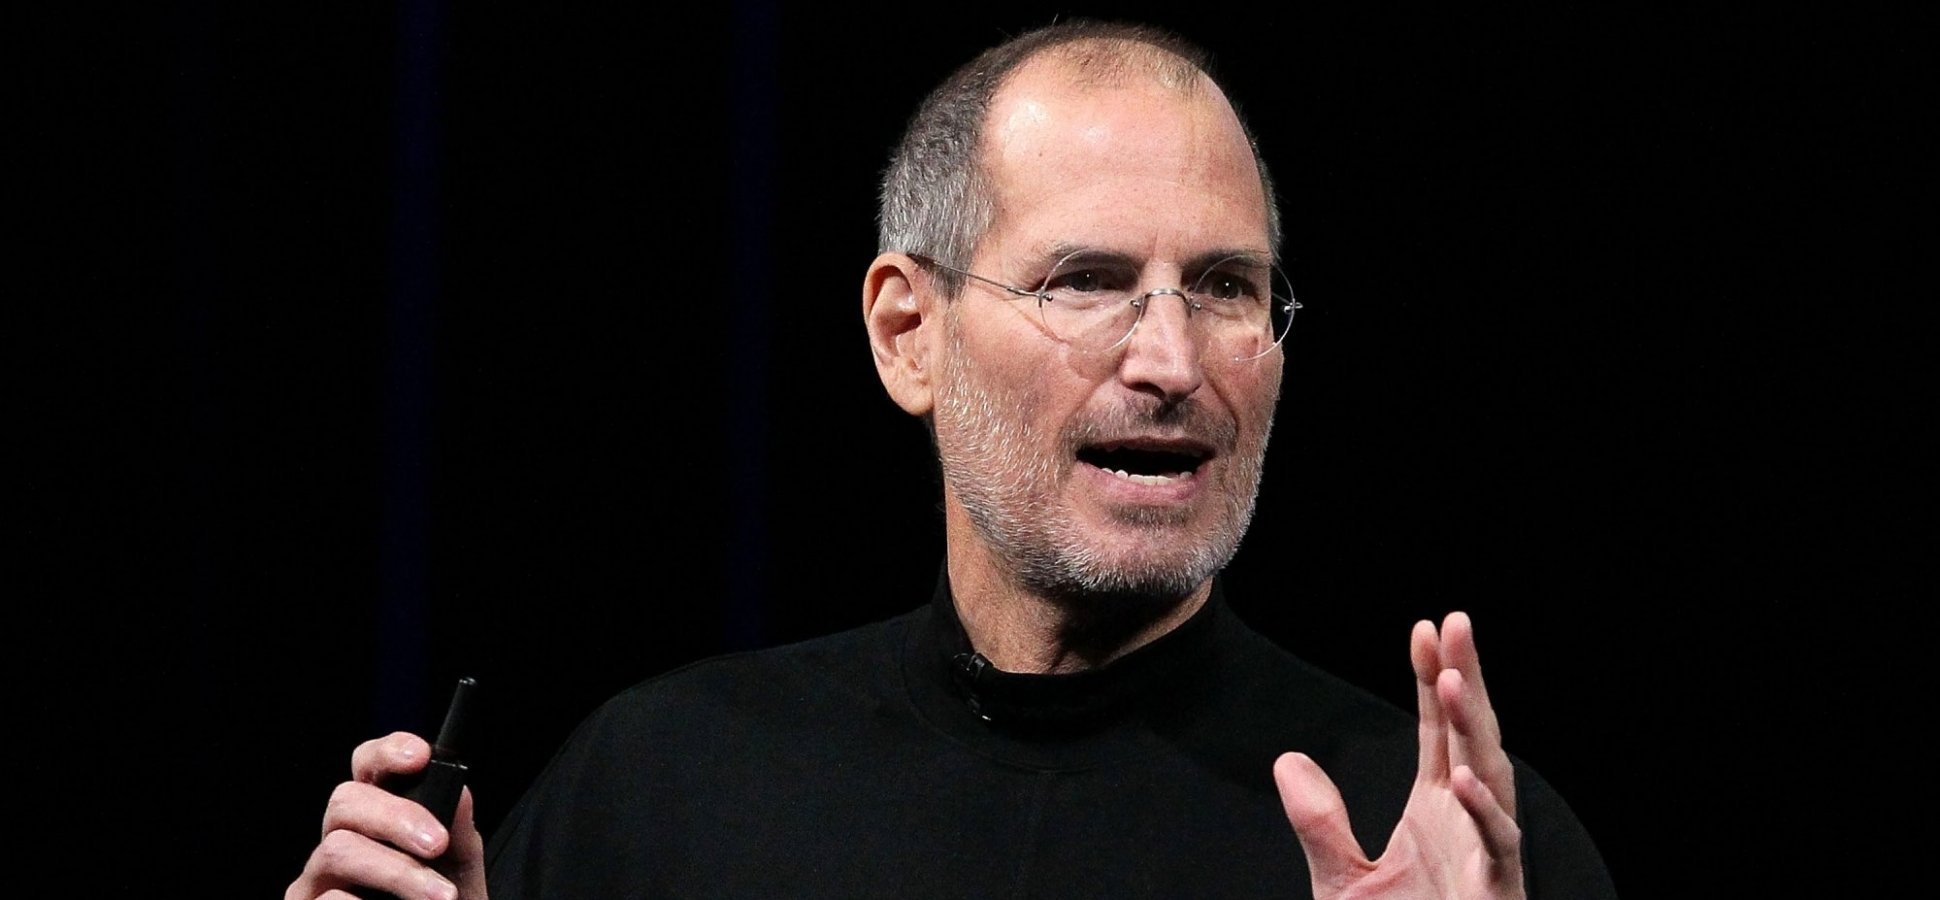 Steve Jobs Did This 1 Weird Thing Consistently When Coming Up With a Big Idea